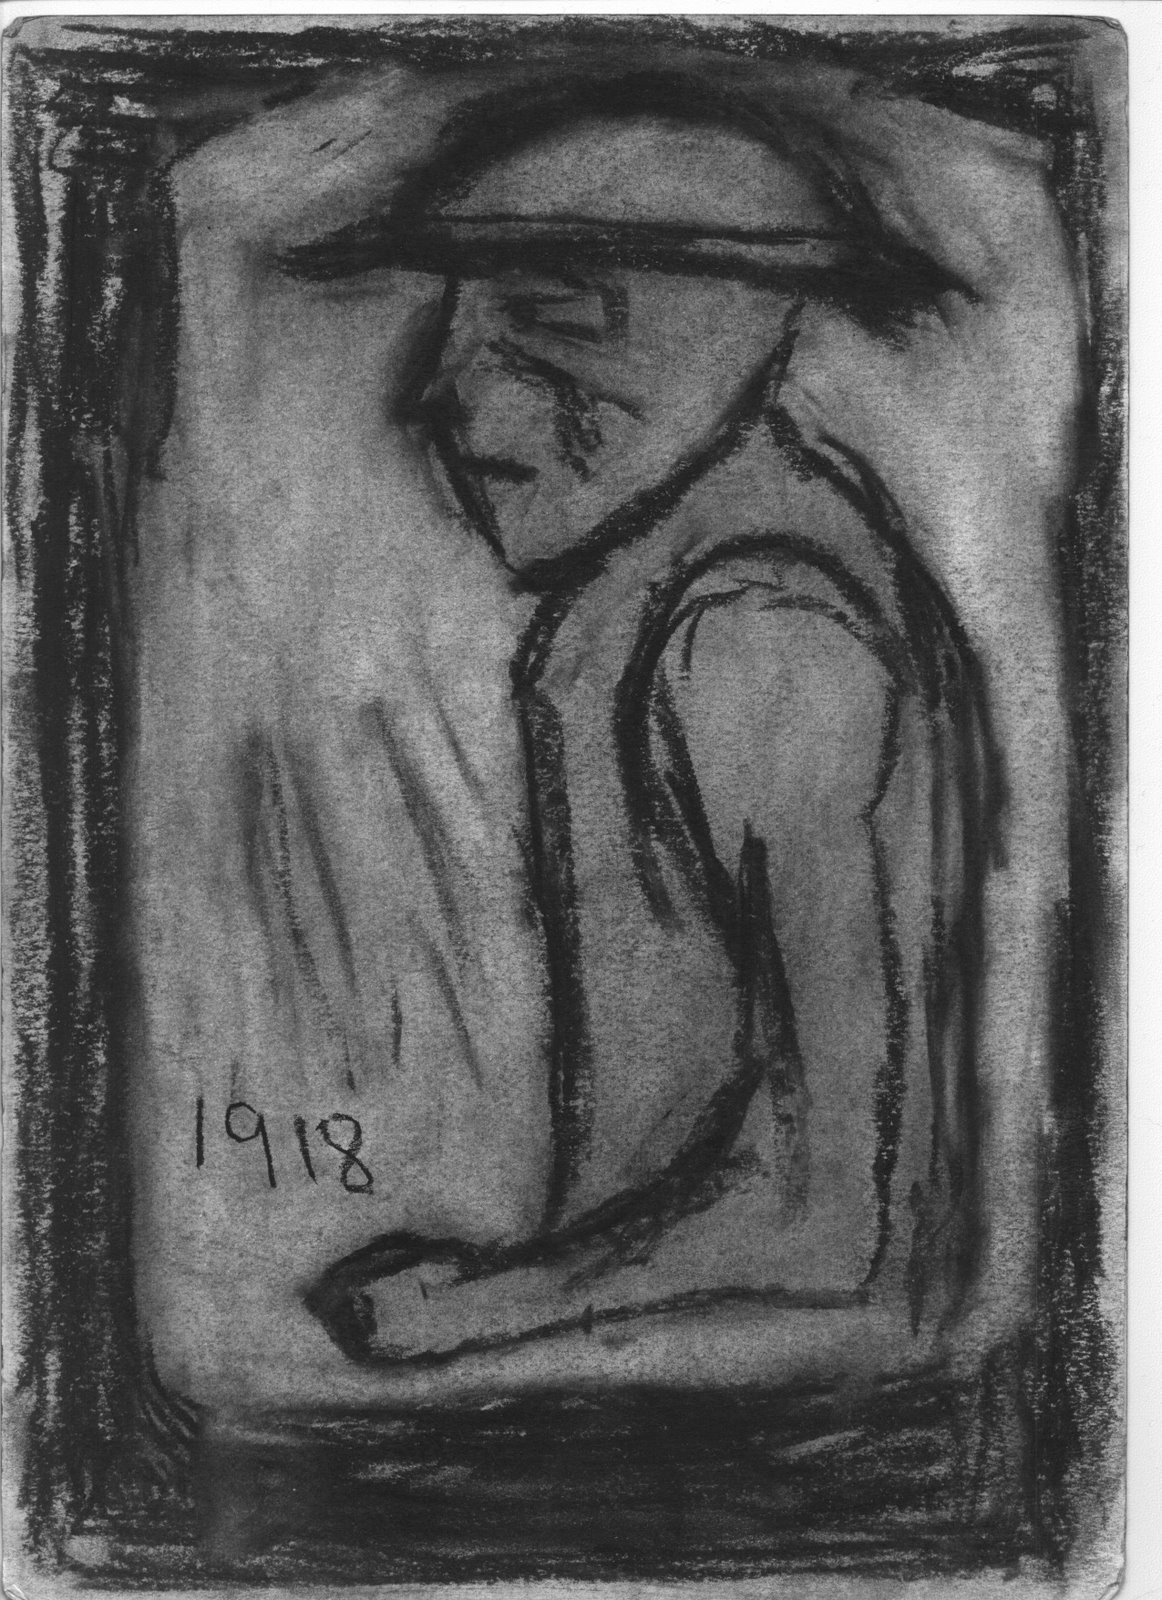 Doughboy 1918, charcoal on paper, 2009